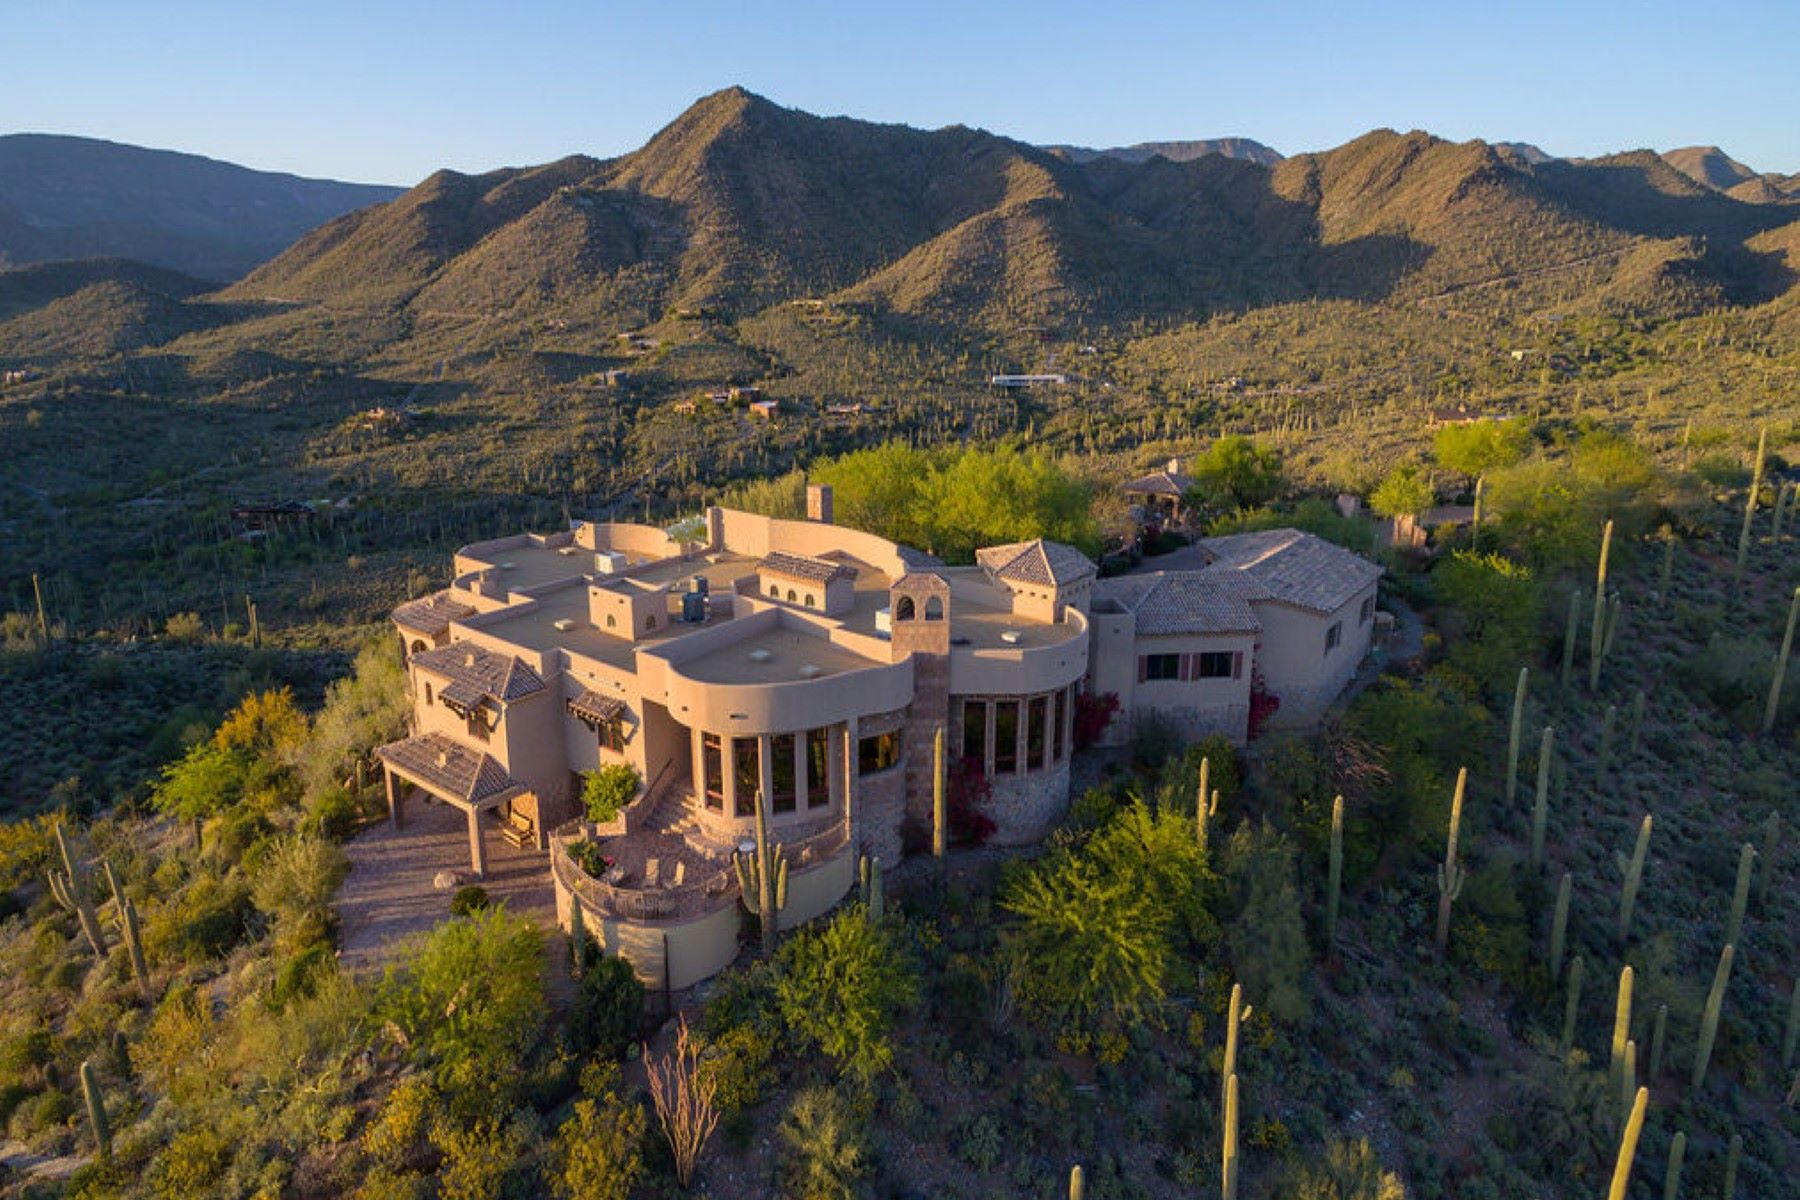 Einfamilienhaus für Verkauf beim Phoenix area's most secluded and private gated mountaintop estate 42820 N Fleming Springs Rd Cave Creek, Arizona, 85331 Vereinigte Staaten